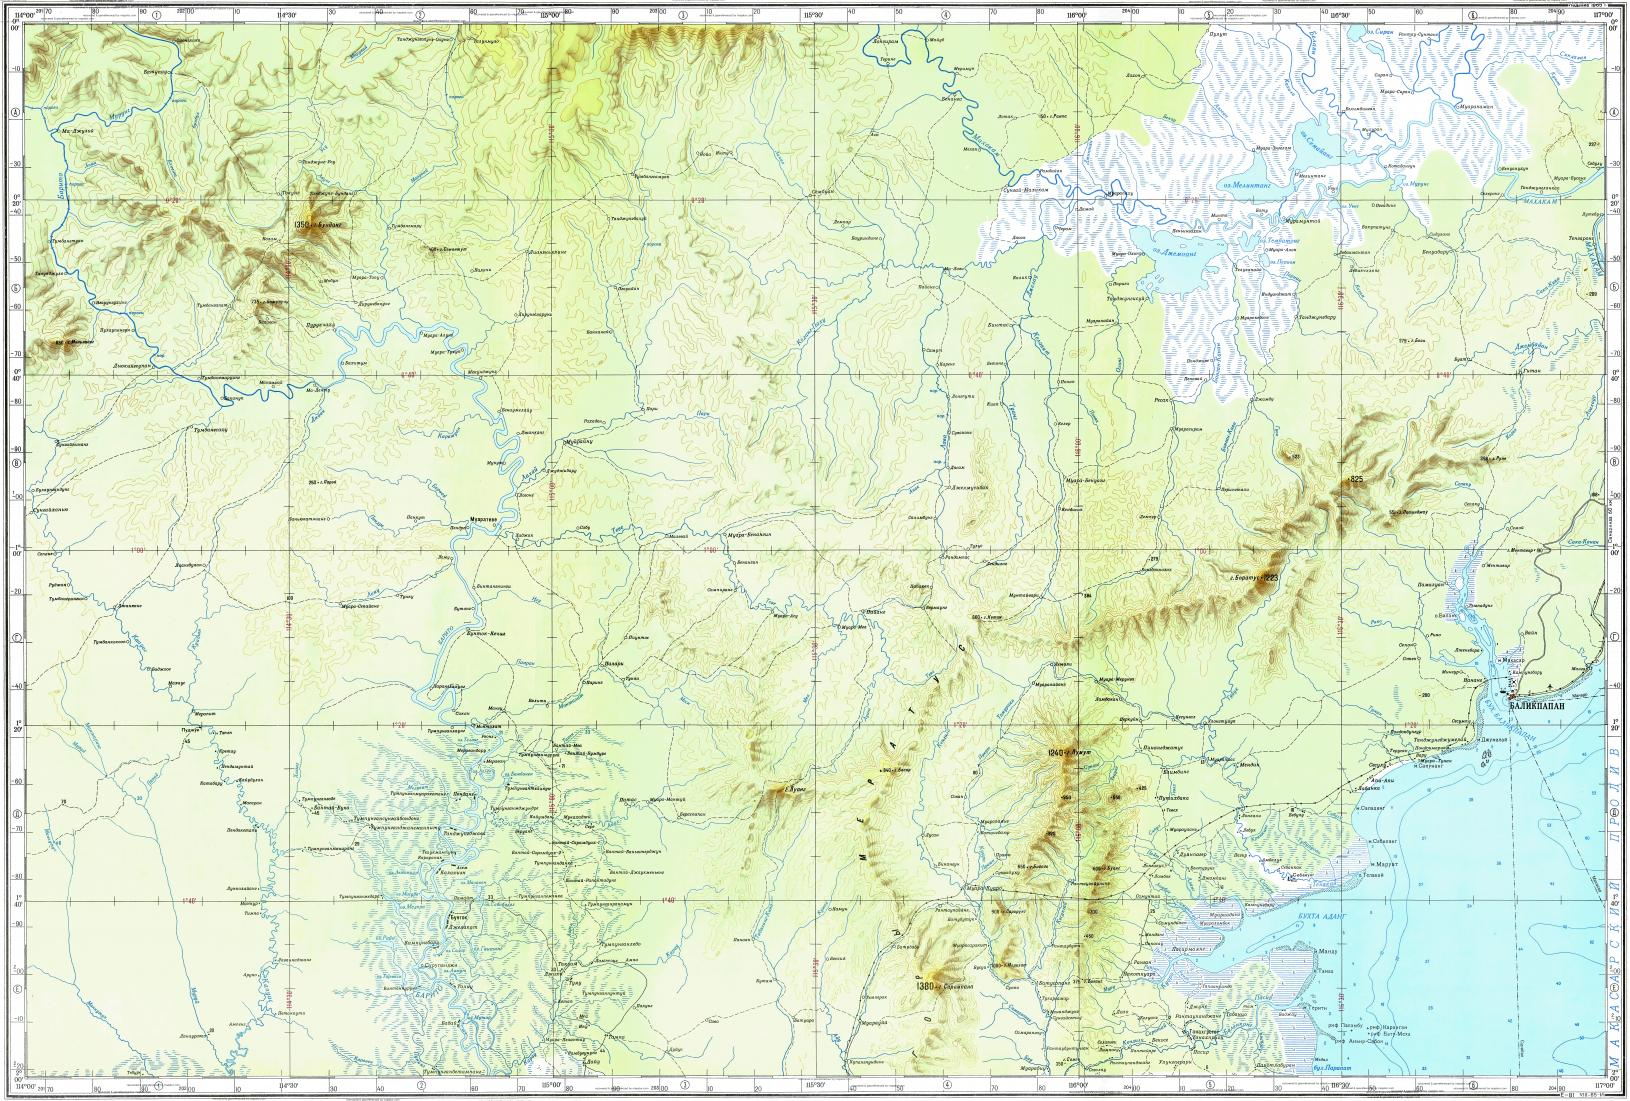 Download topographic map in area of balikpapan muaramuntai reduced fragment of topographic map ru gs 500k xa50 gumiabroncs Choice Image